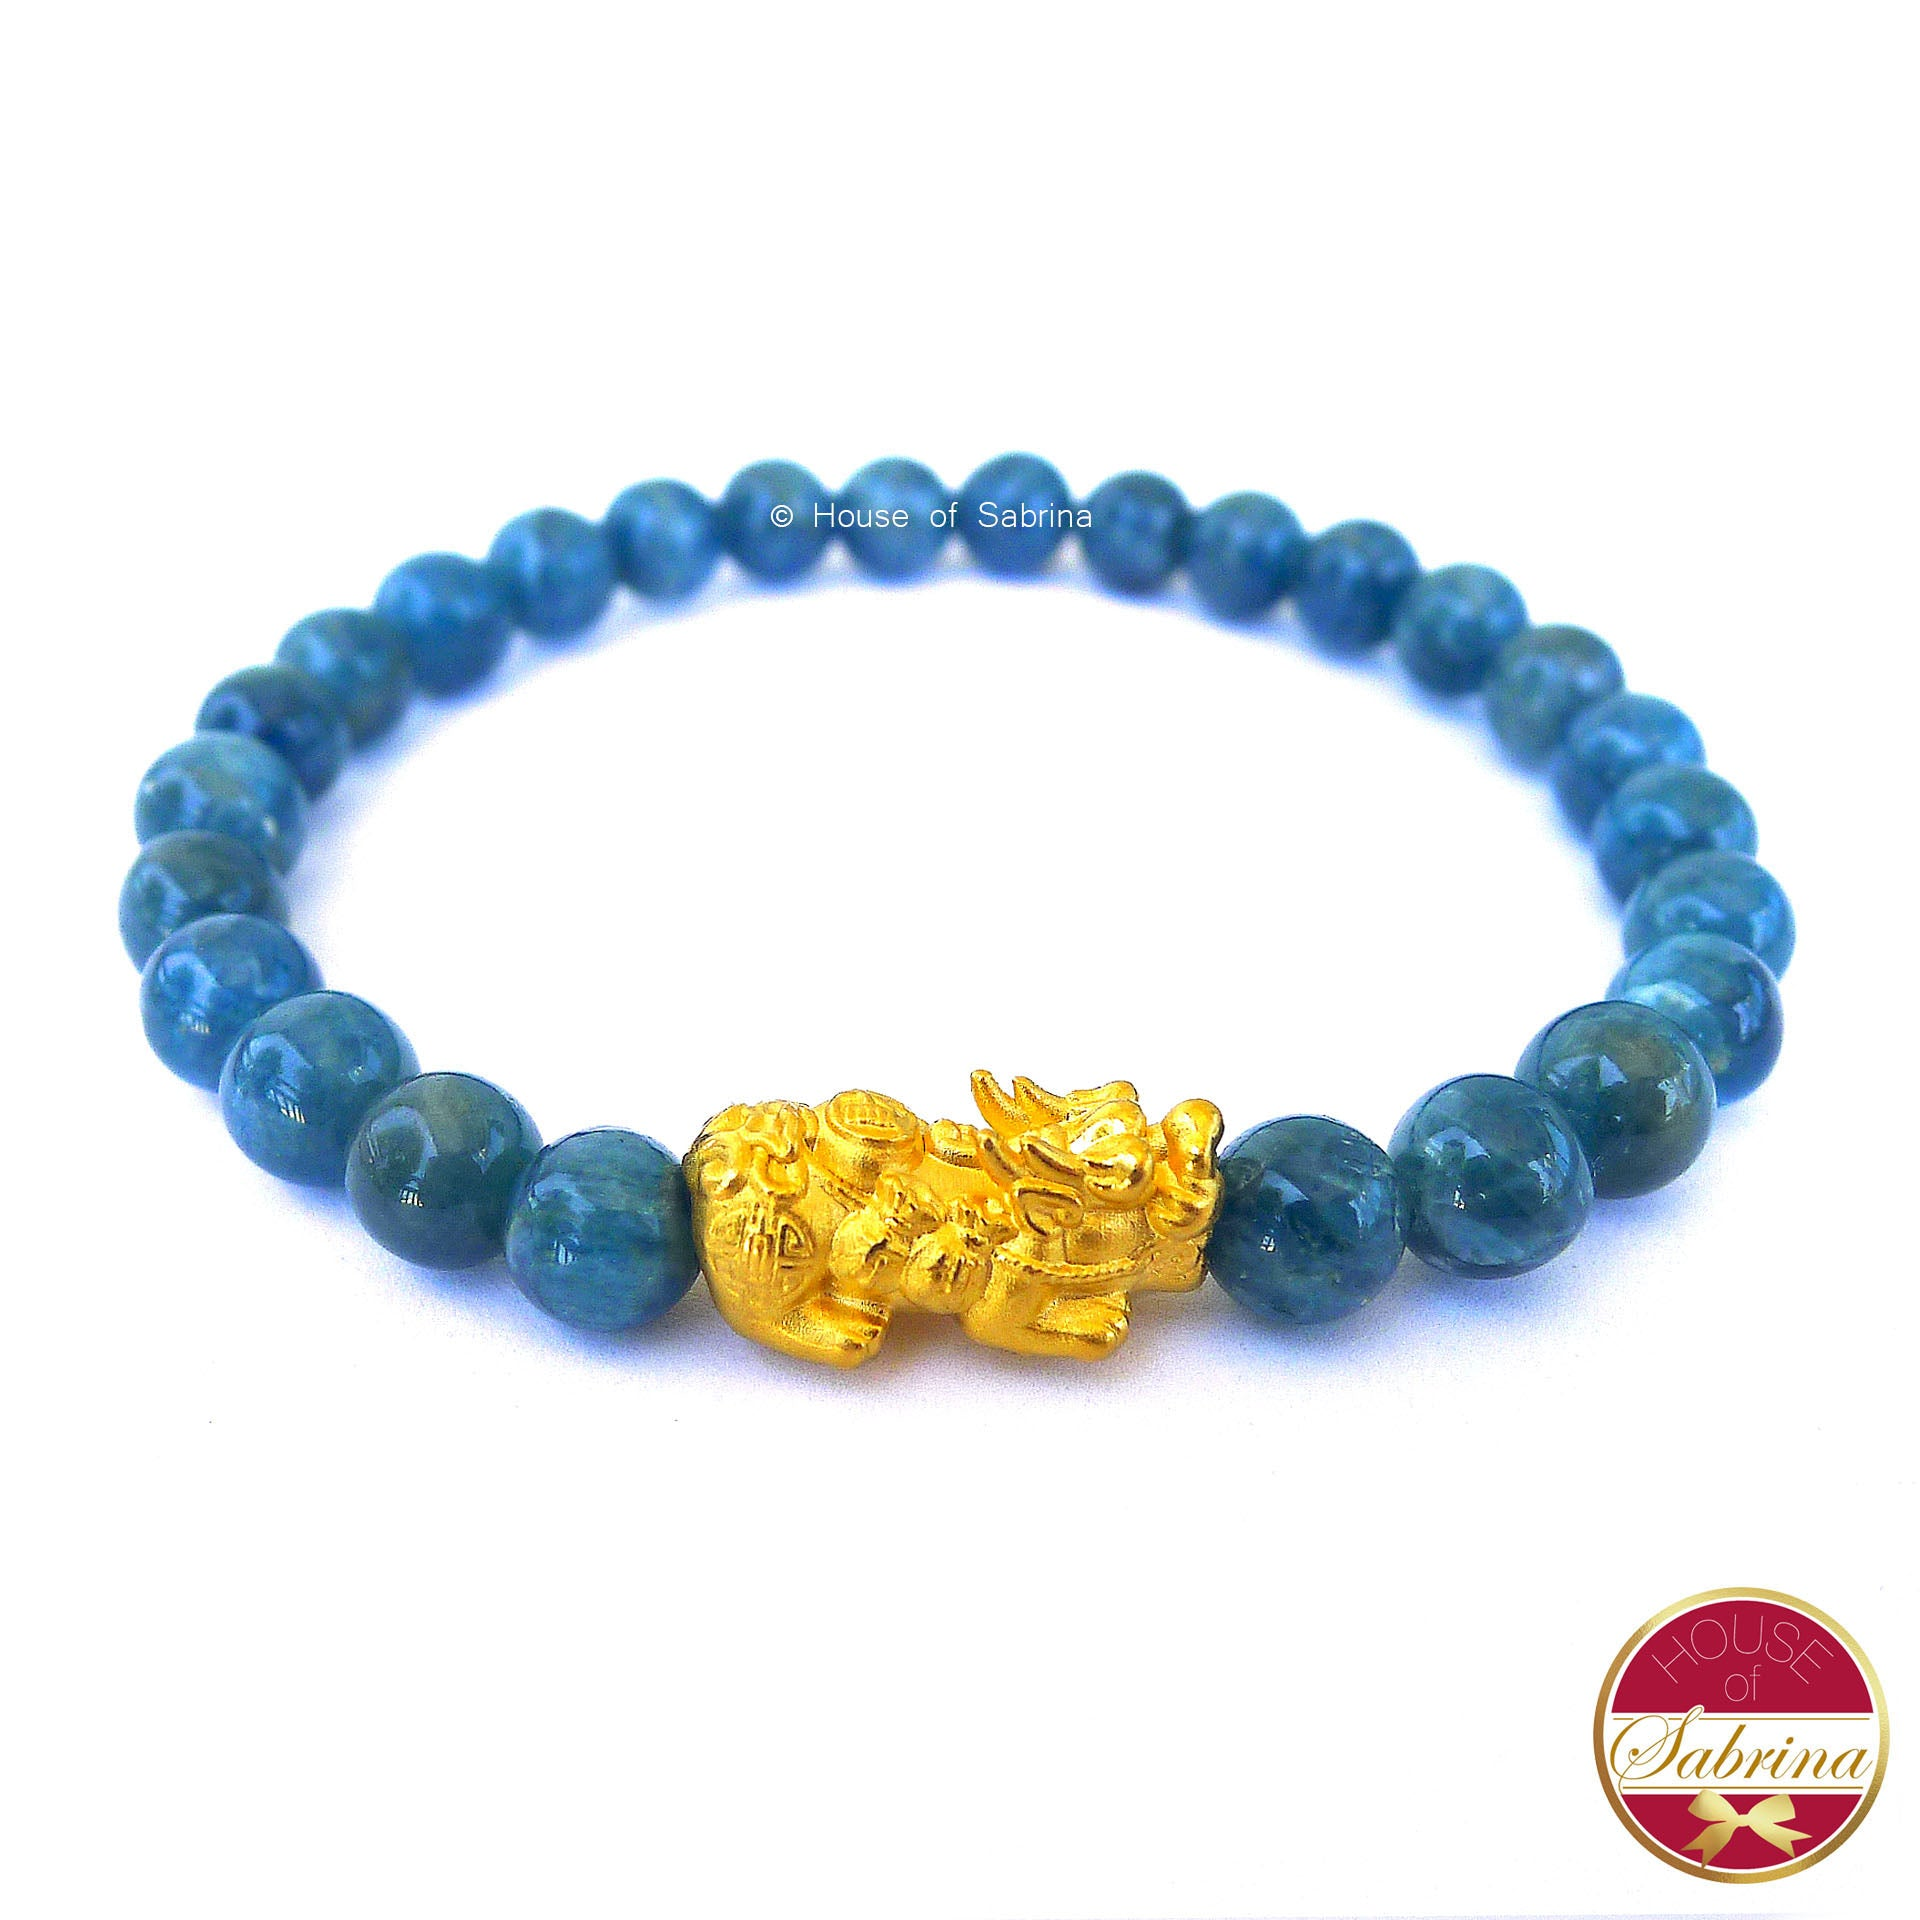 24K Gold Medium Pi Yao Charm in Apatite Bracelet